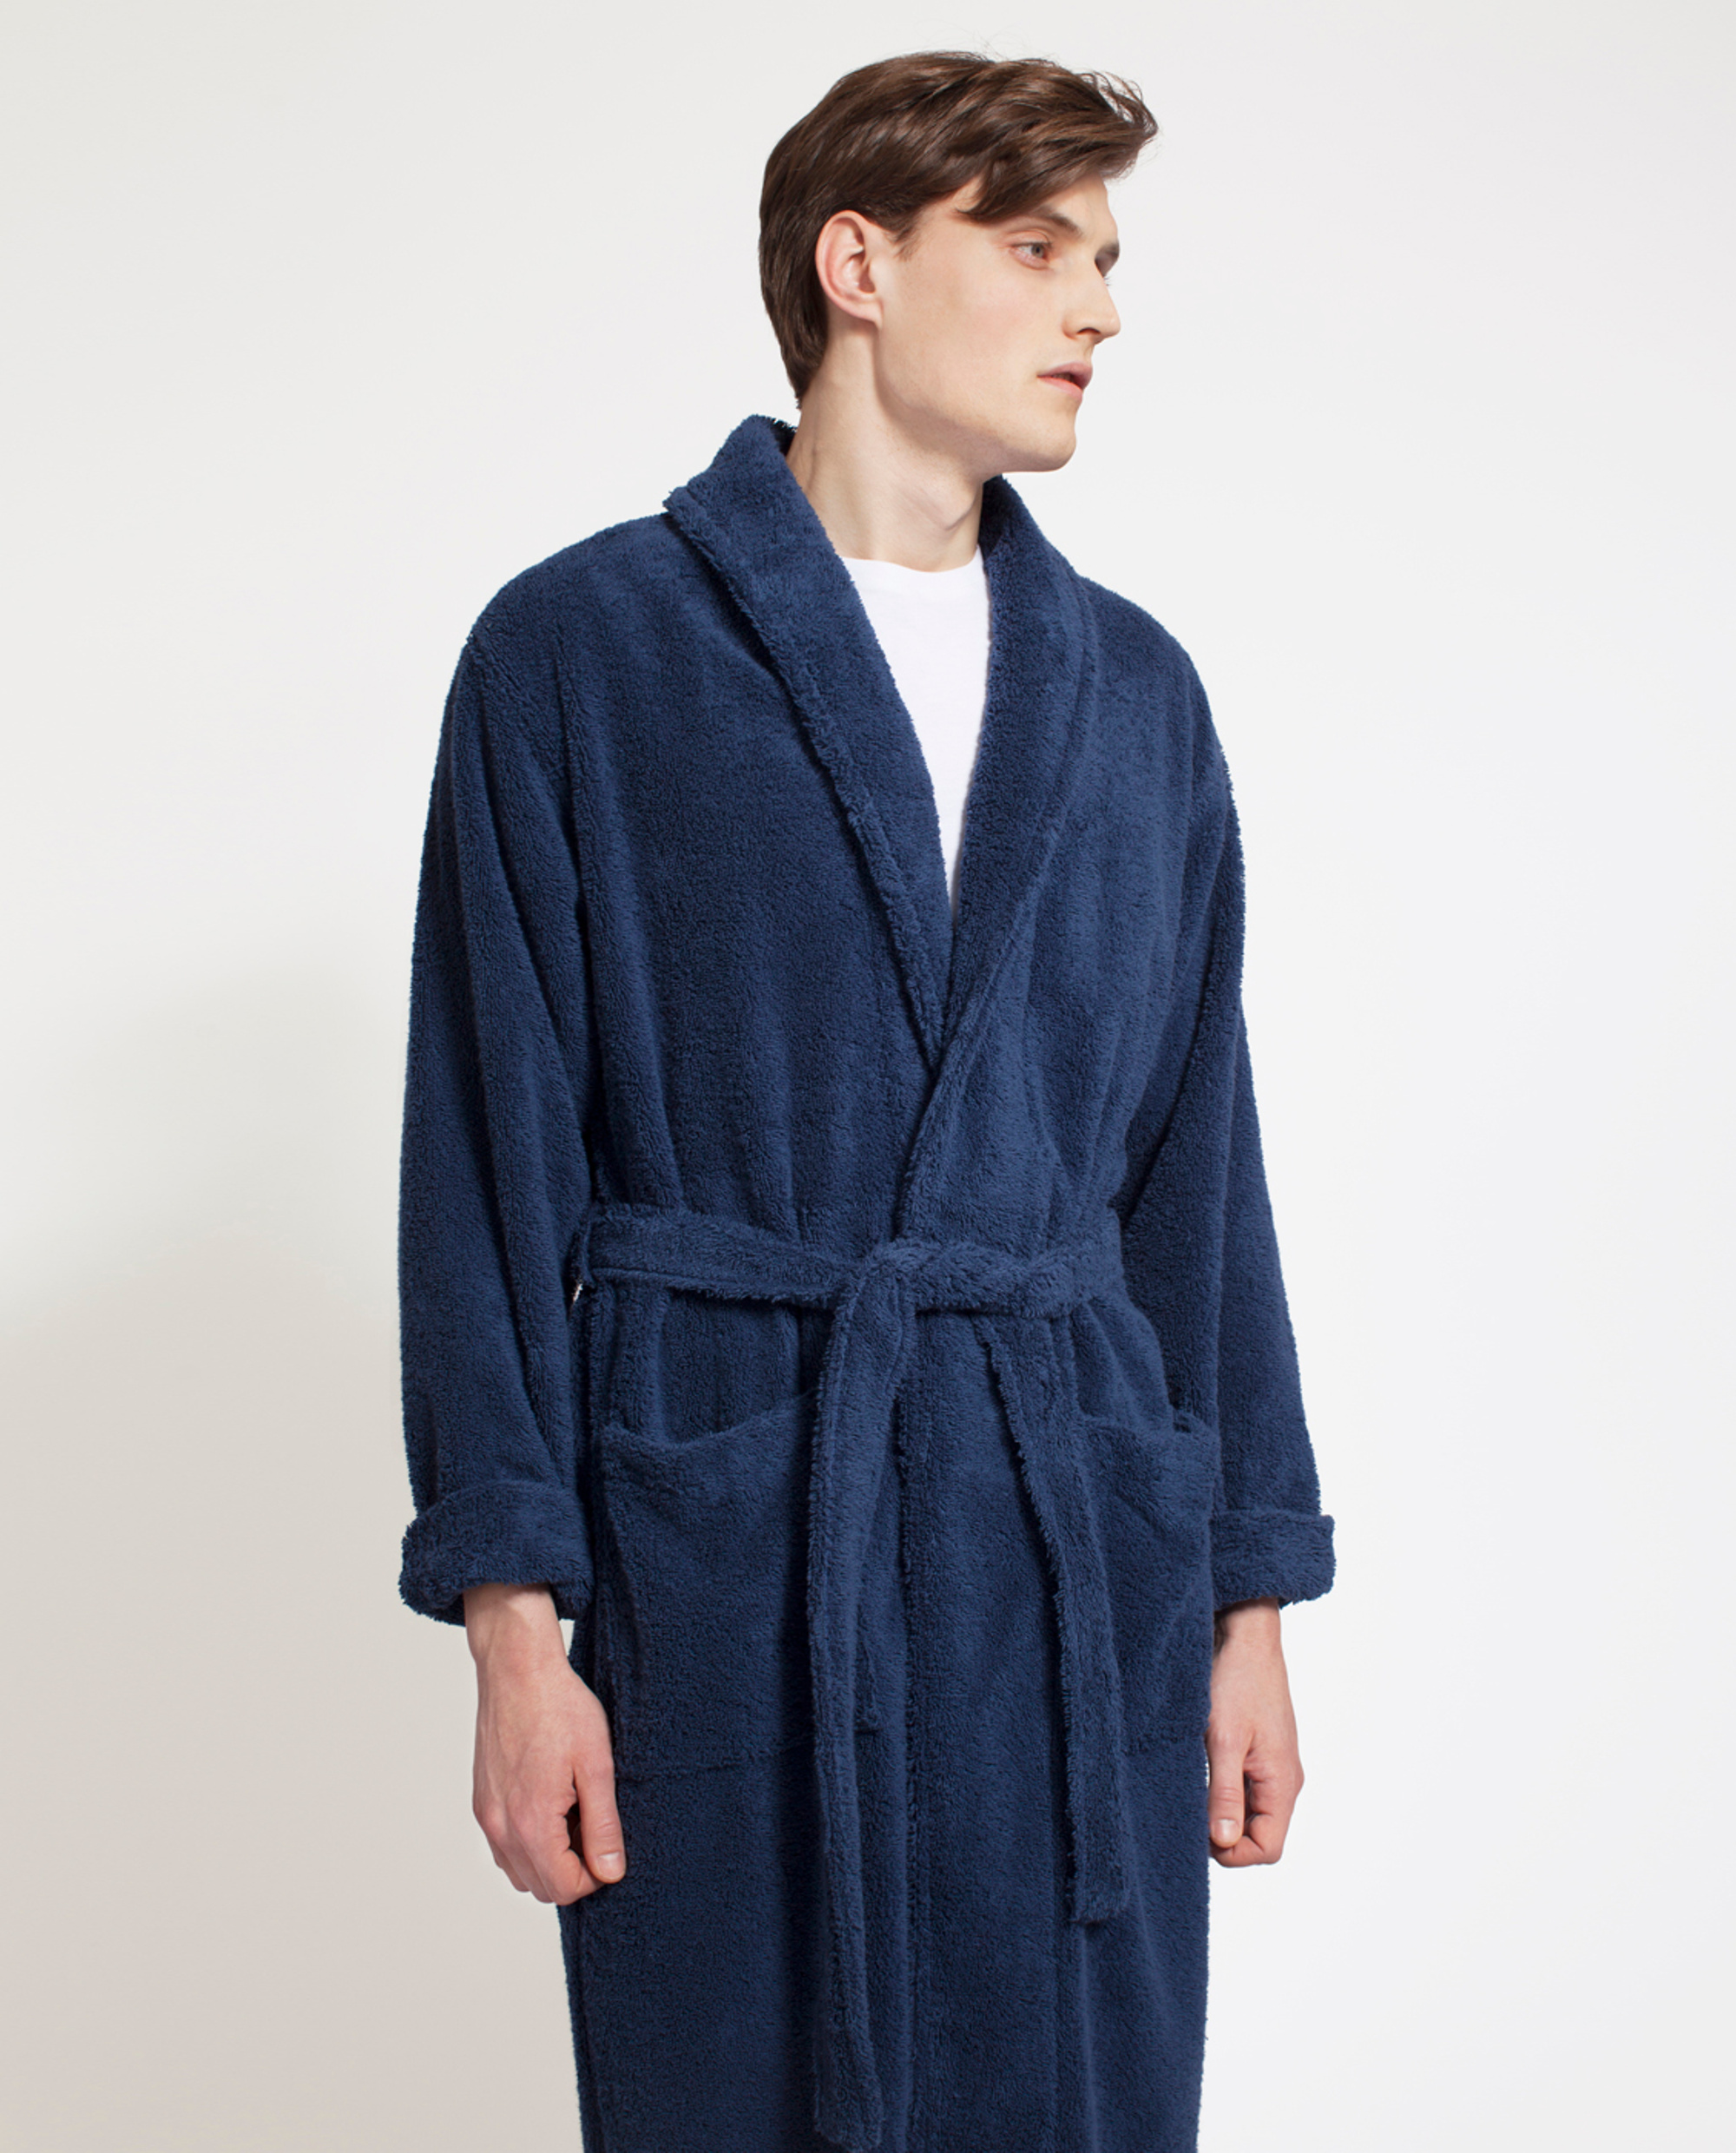 Icons Unisex Original Bathrobe, True Navy